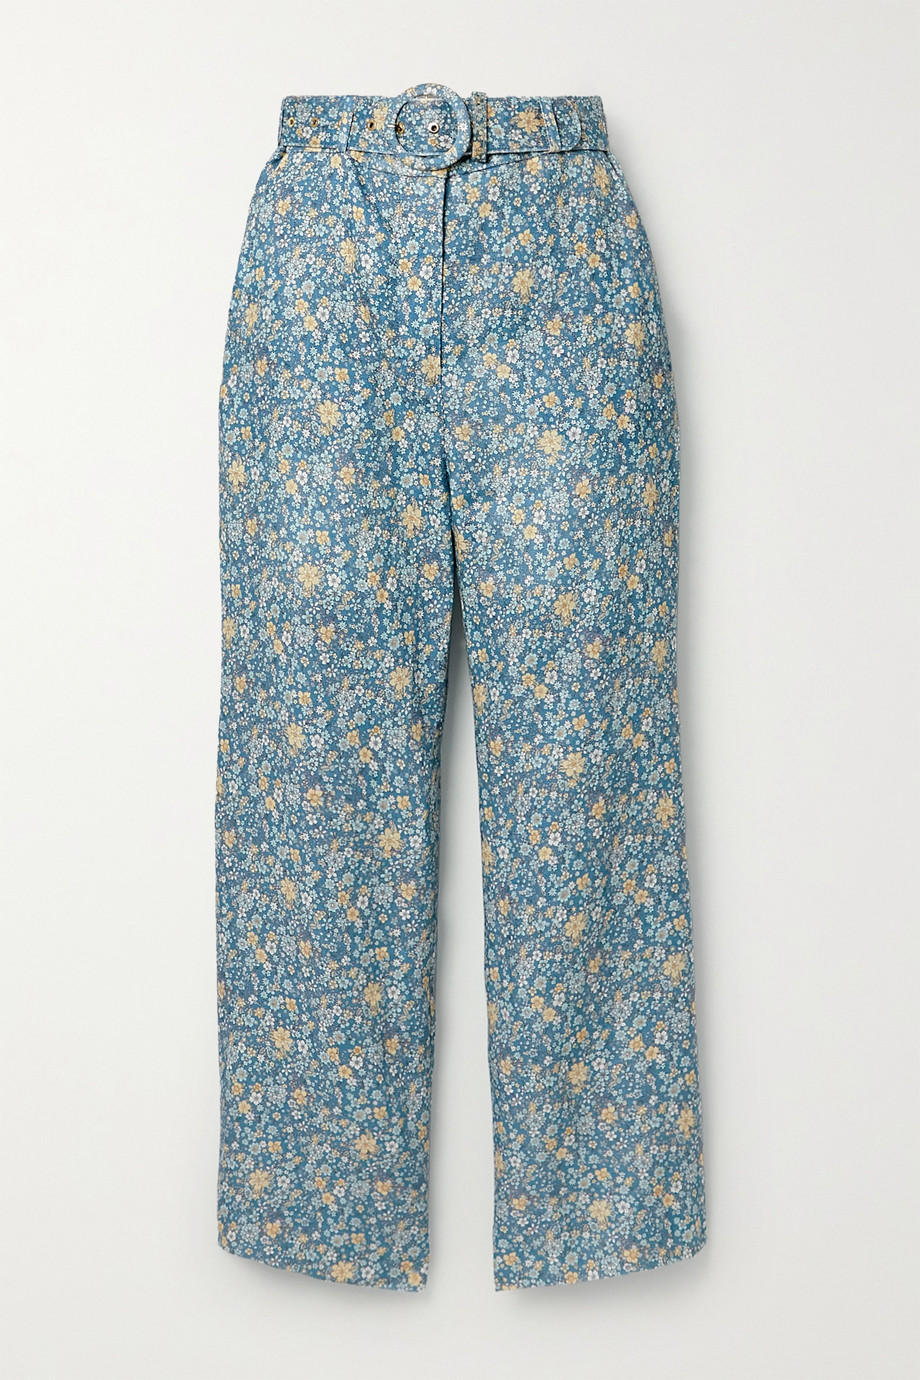 Zimmermann Carnaby belted cropped floral-print linen flared pants